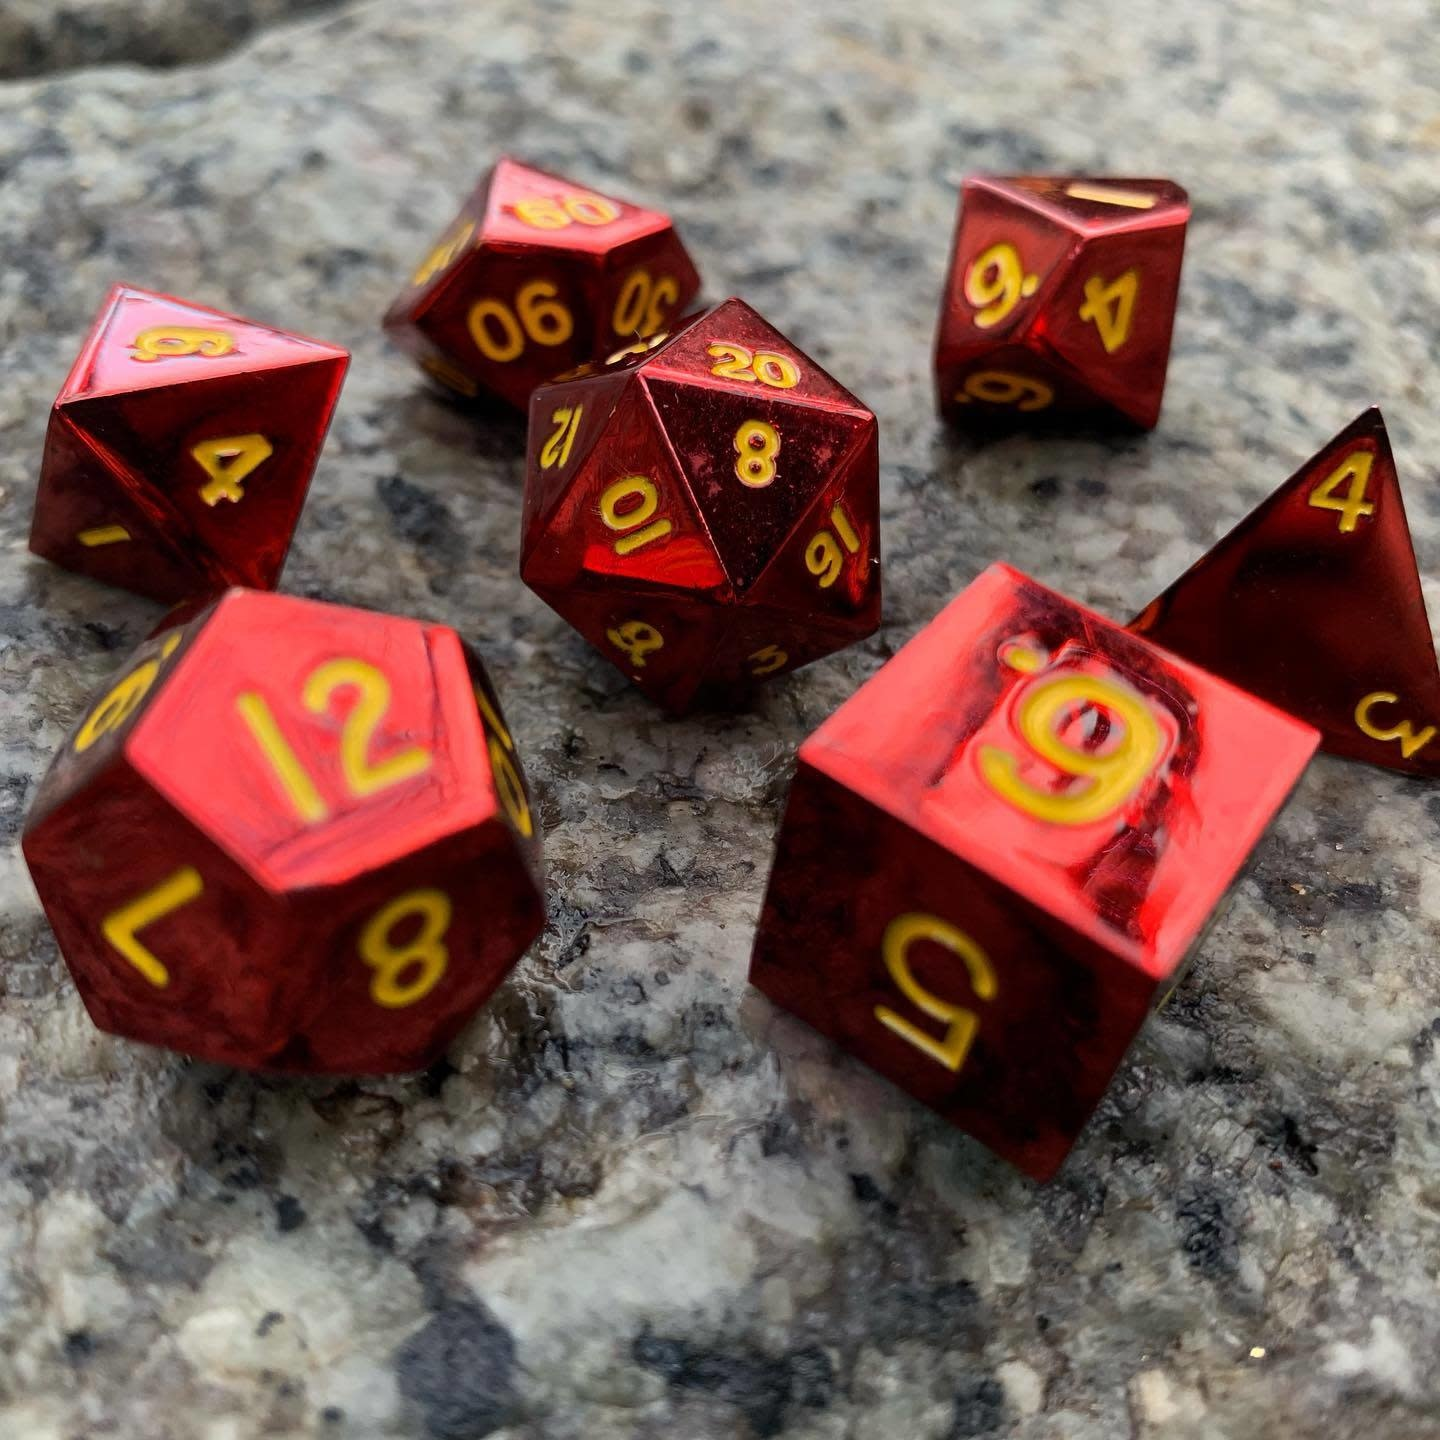 Norse Foundry Fireball Metal Dice Goblin Games Check out our norse miniatures selection for the very best in unique or custom, handmade pieces from our role playing miniatures shops. norse foundry fireball metal dice